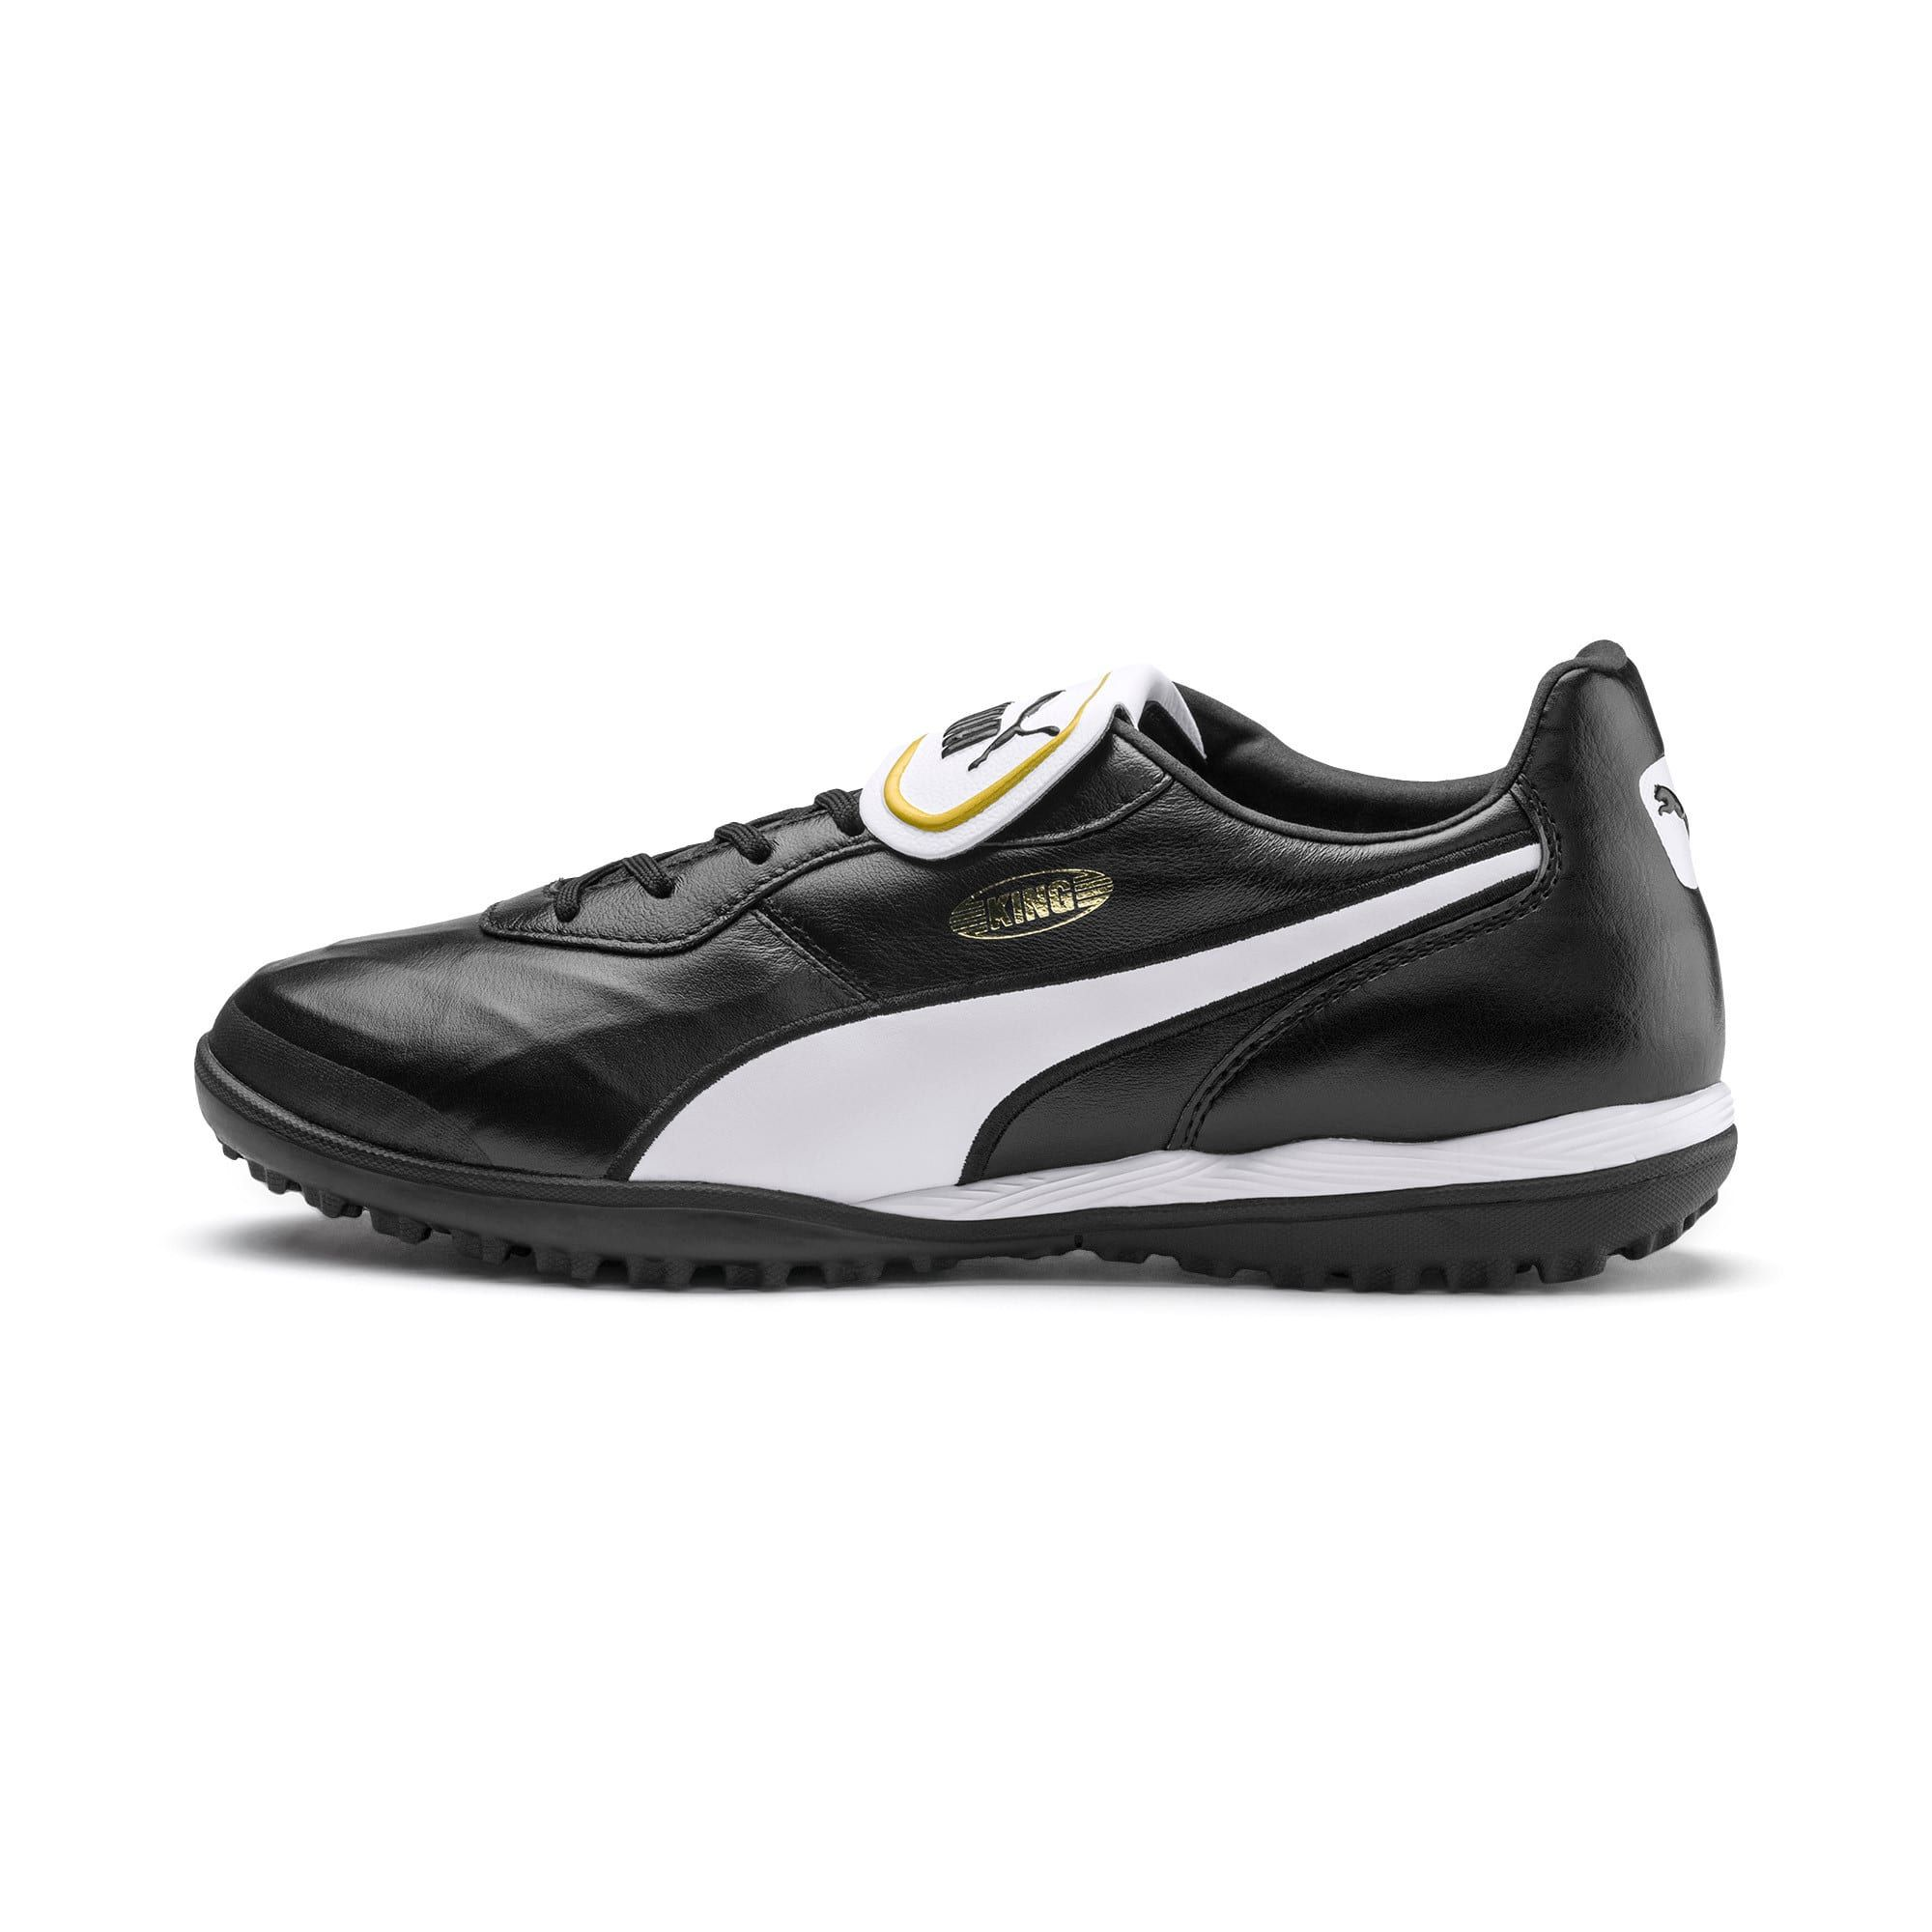 PUMA Mens Shoes | Running Shoes, Football Boots, Suede